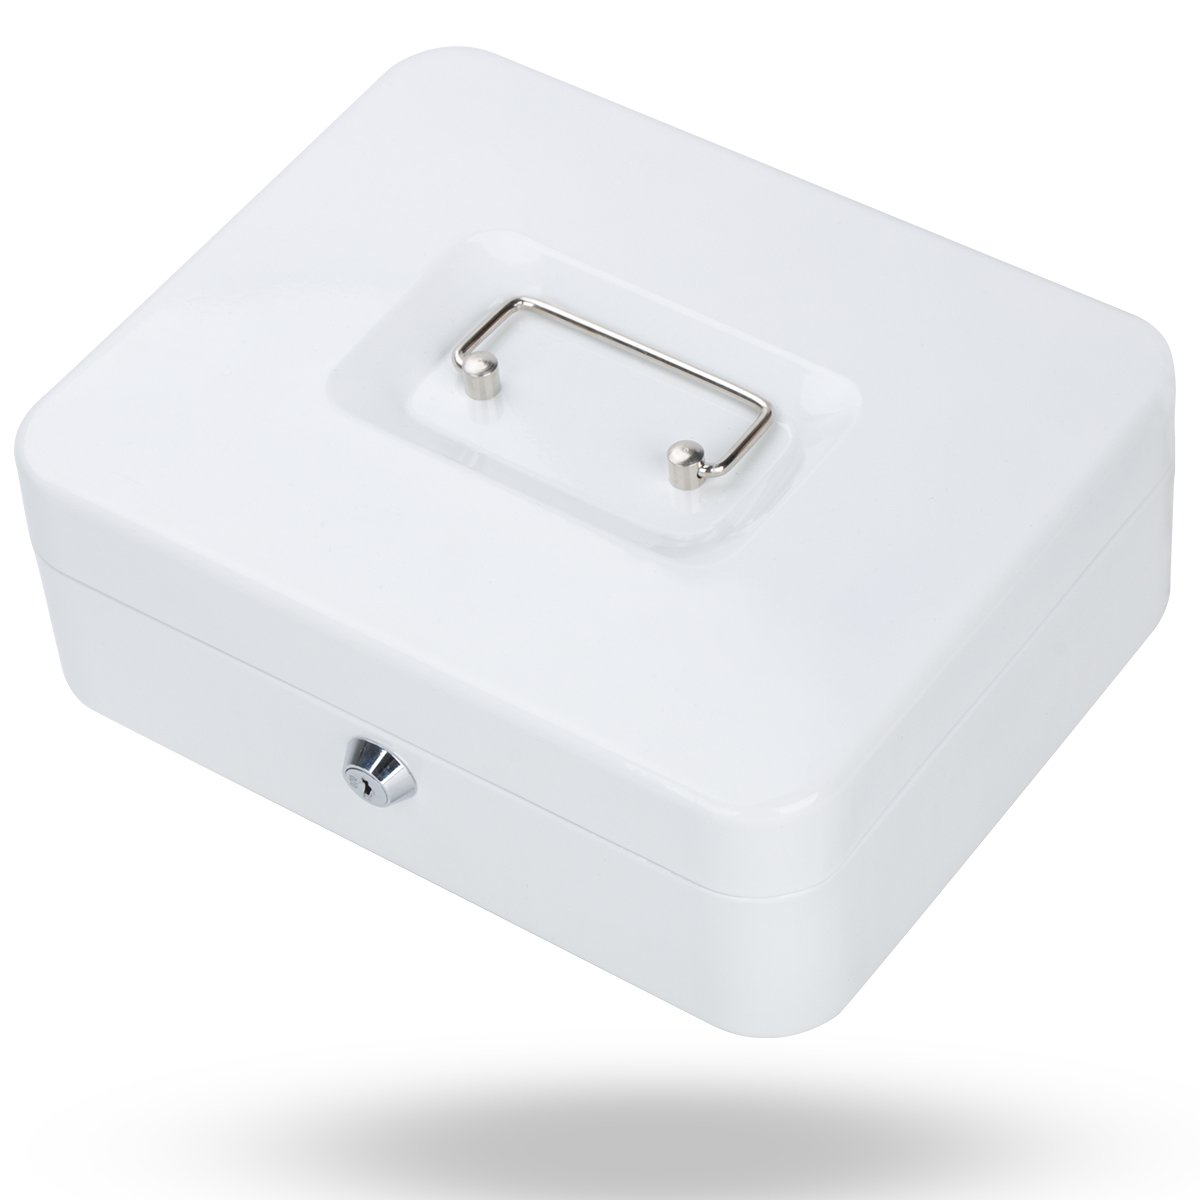 Metal Cash Box with Money Tray, Decaller Money Box with Key Lock for Security (White, Medium - 9 4/5'' x 7 4/5'' x 3 1/2''), QH2507M